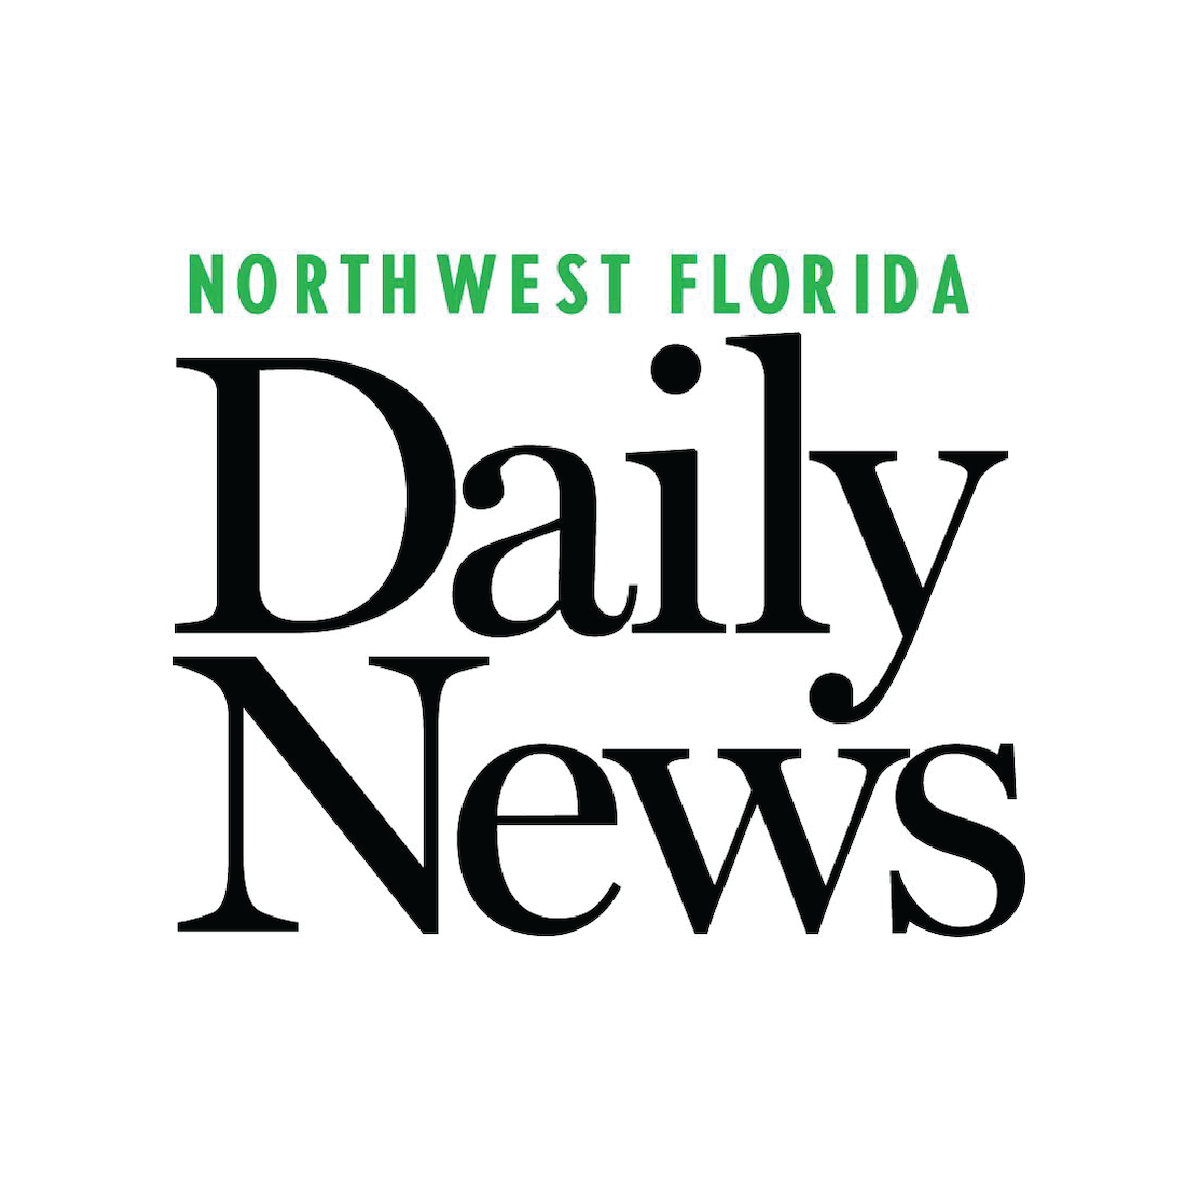 nwfl daily news.png